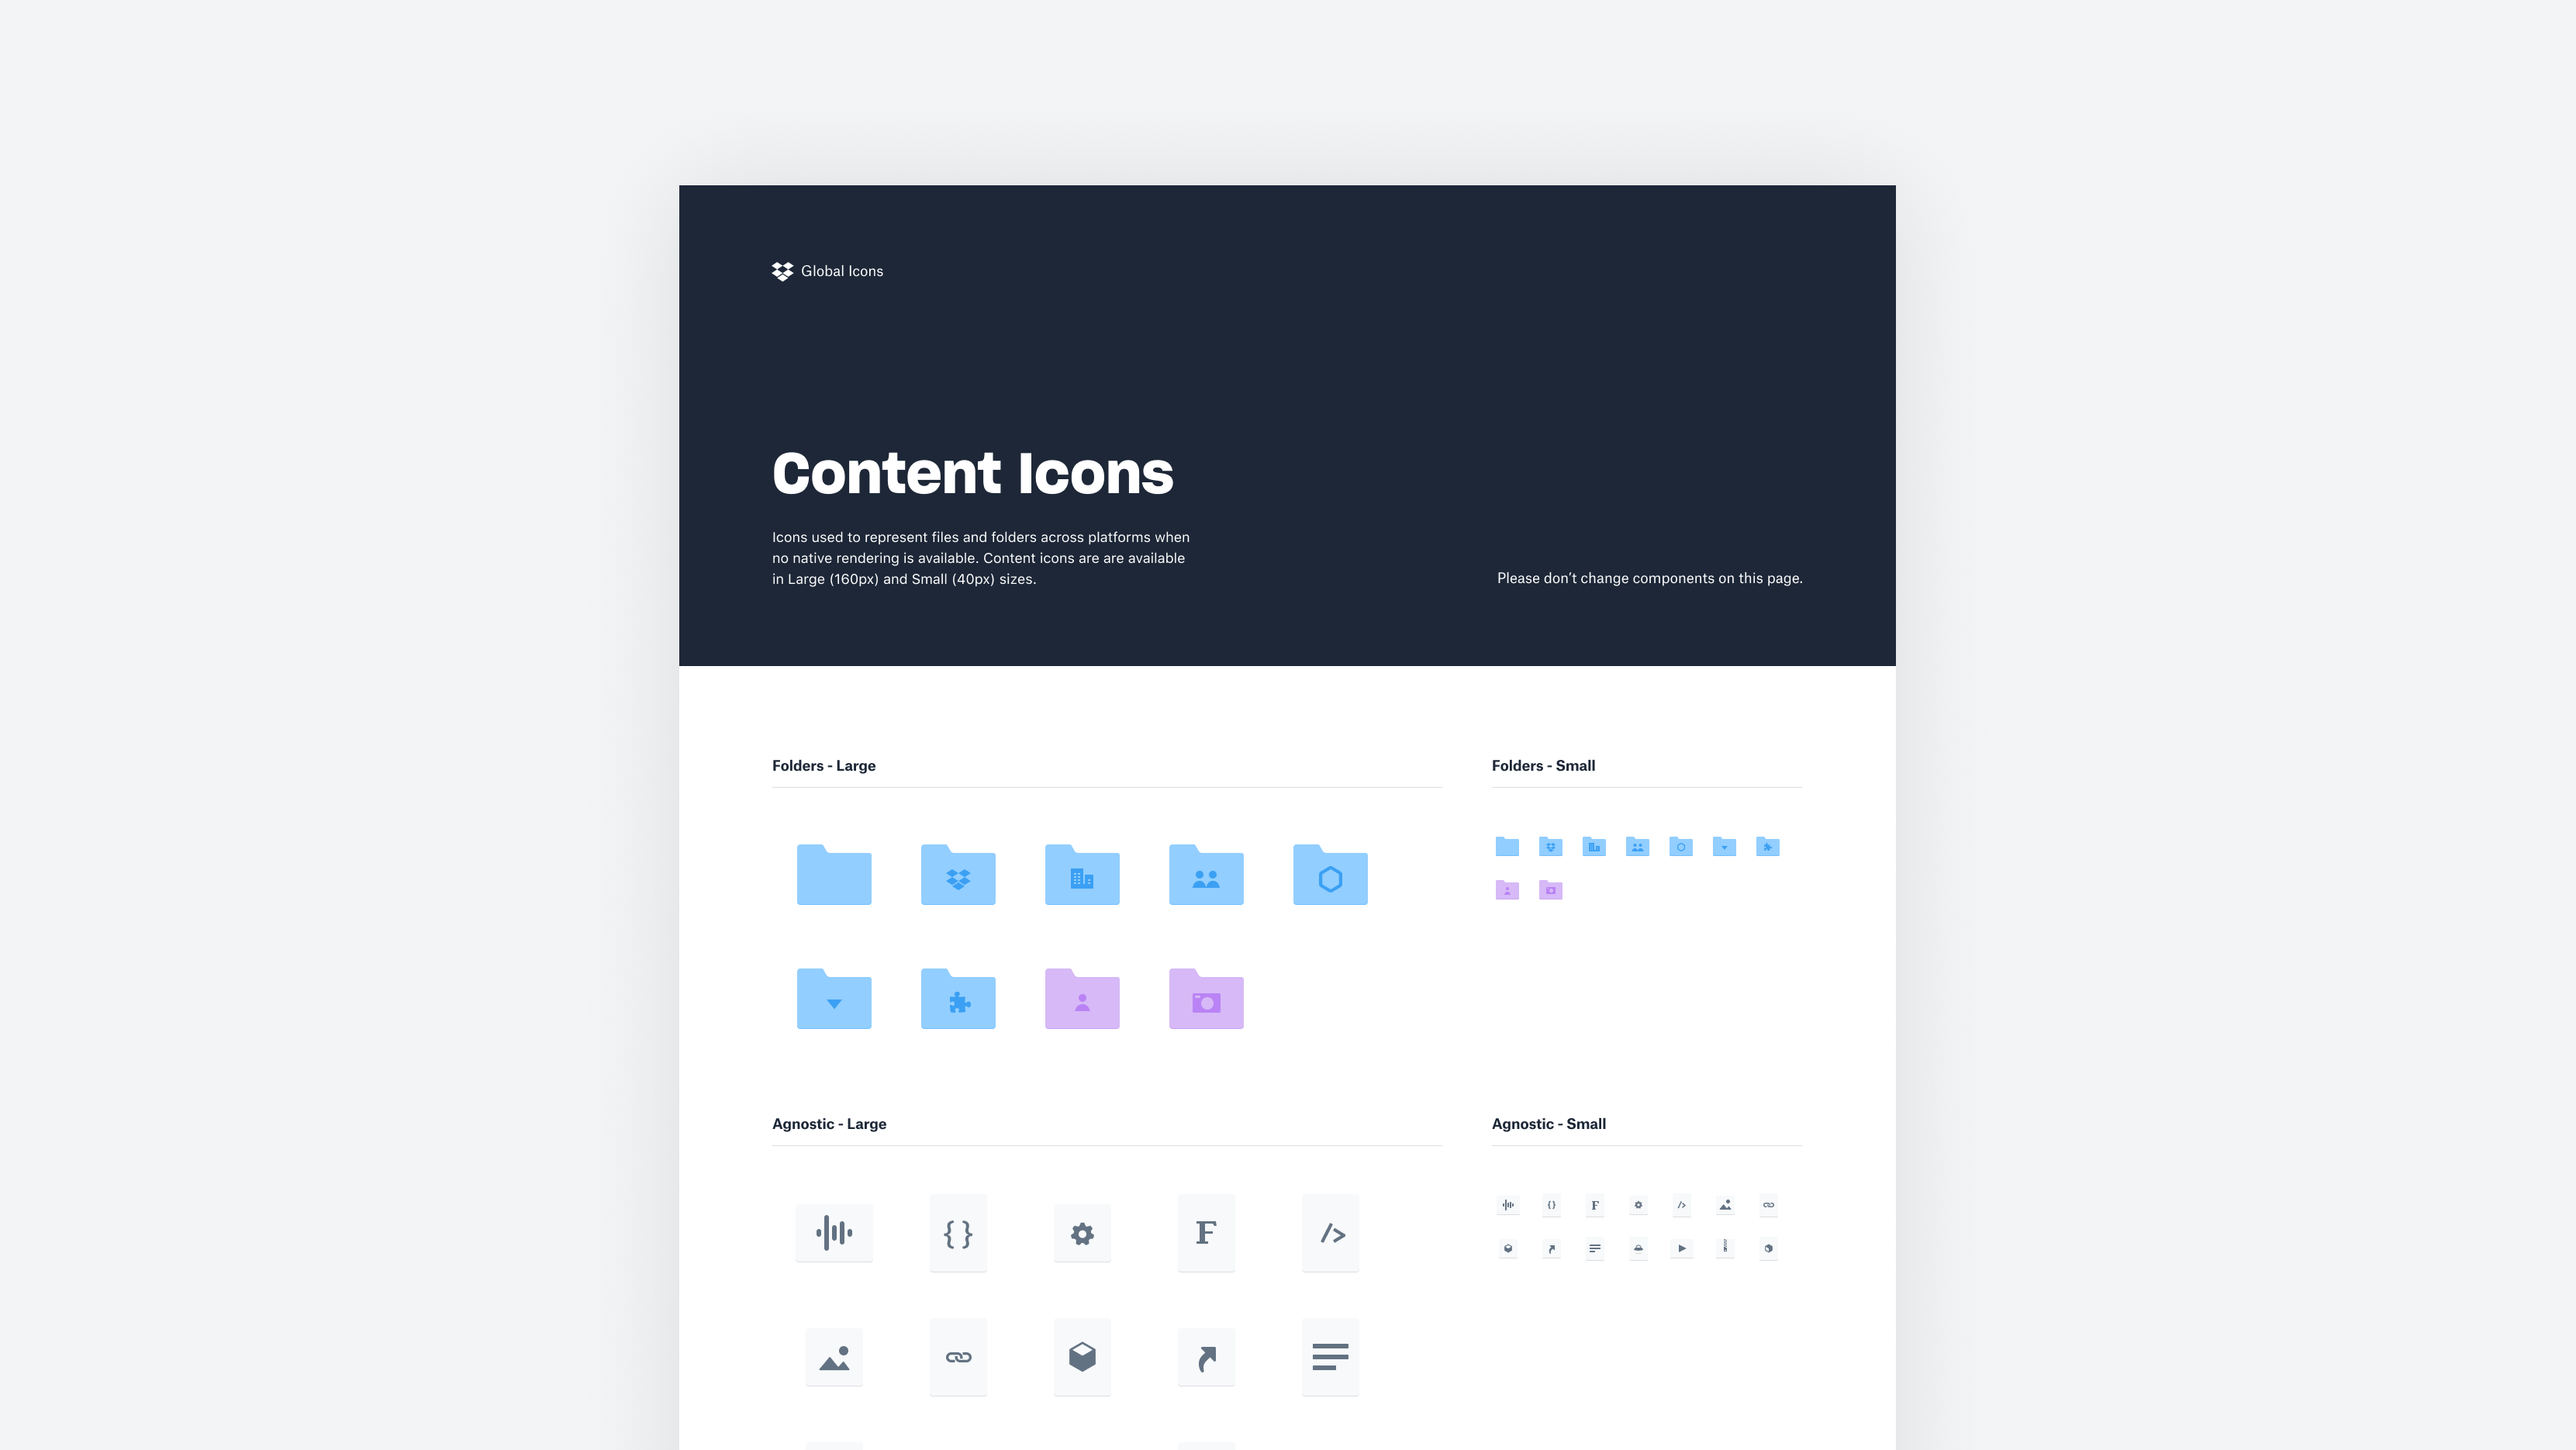 Content Icons in the Global Icons library.